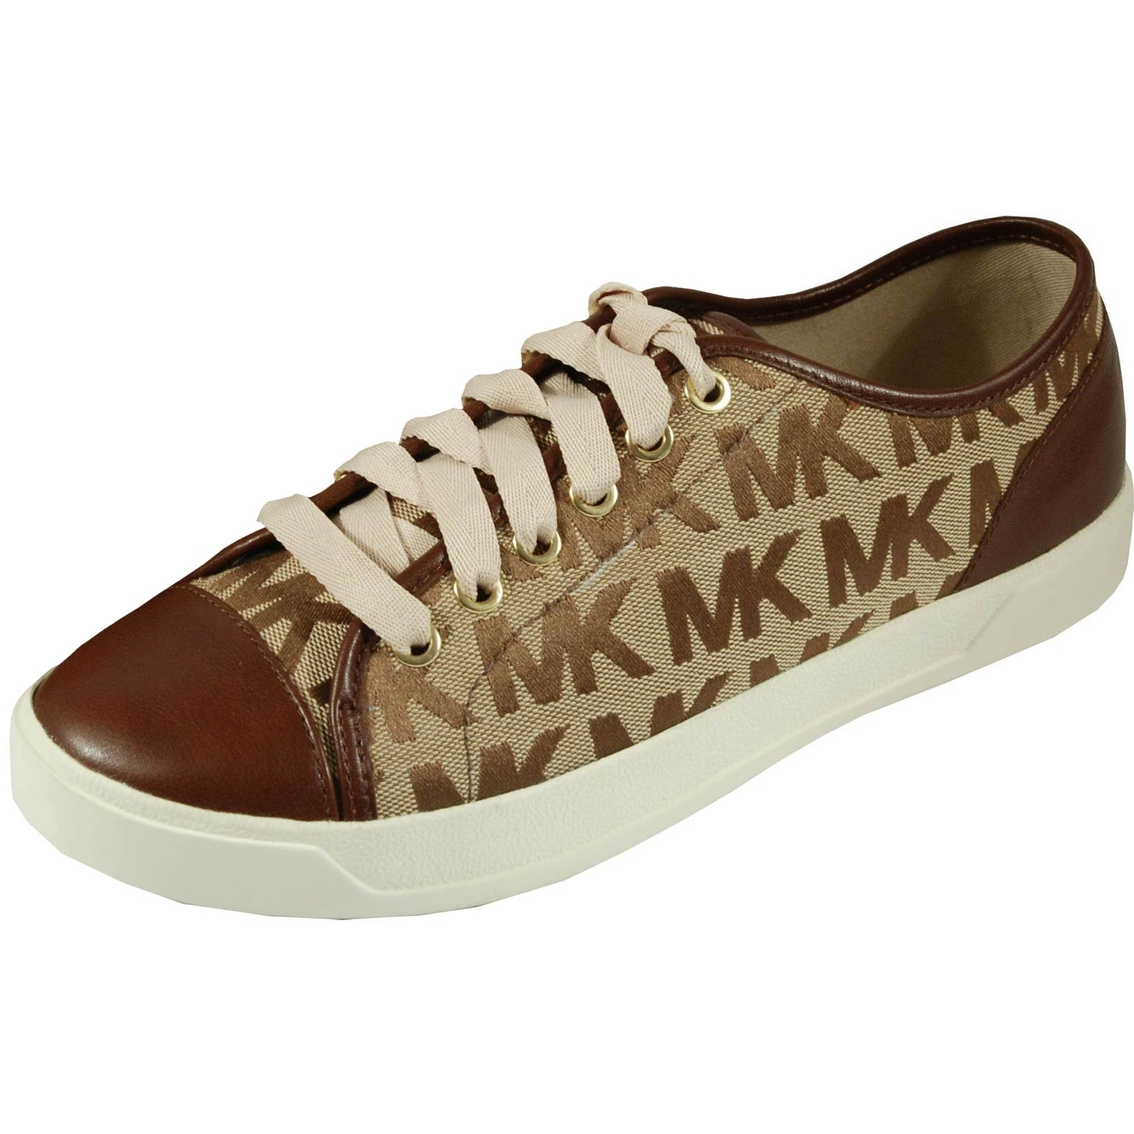 00b41e159252 Michael Kors Women's Mk City Sneakers | Casuals | Shoes | Shop The ...